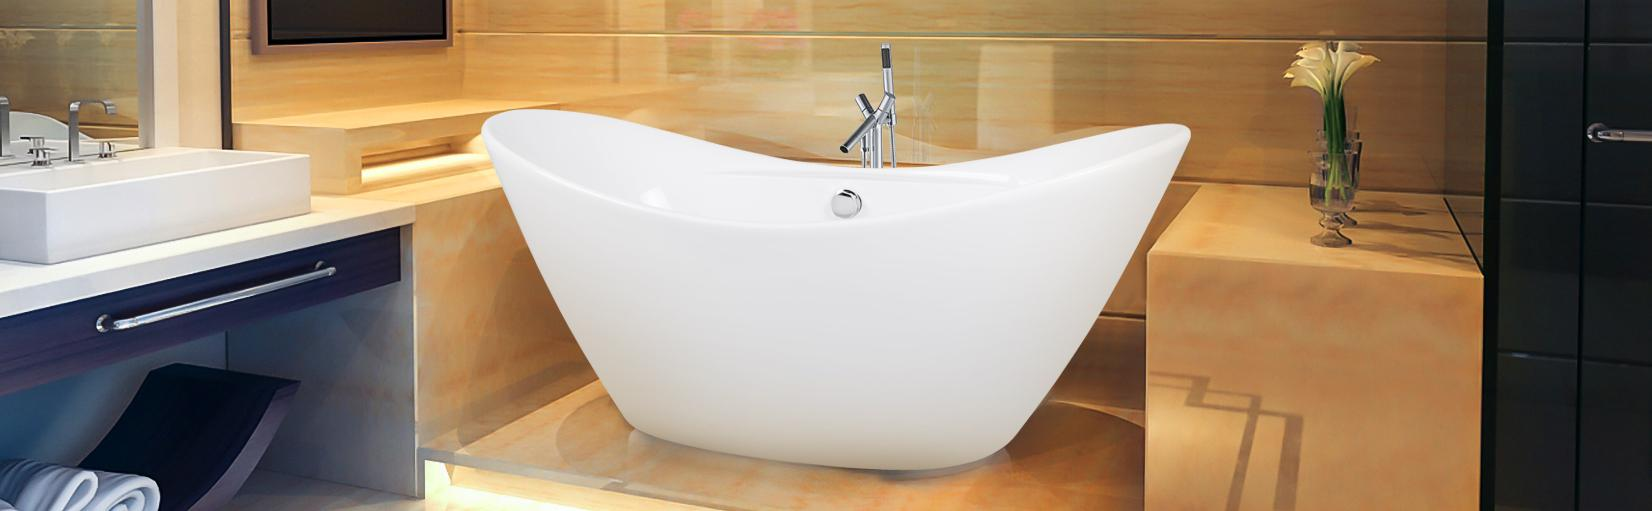 Cute Painting Tub Thick How Much Does It Cost To Reglaze A Tub Square Resurface Bathtub Cost Tile Reglazing Cost Old Glazing Bathtubs SoftBathtub Photos AKDY F210 Bathroom White Color Free Standing Acrylic Bathtub ..